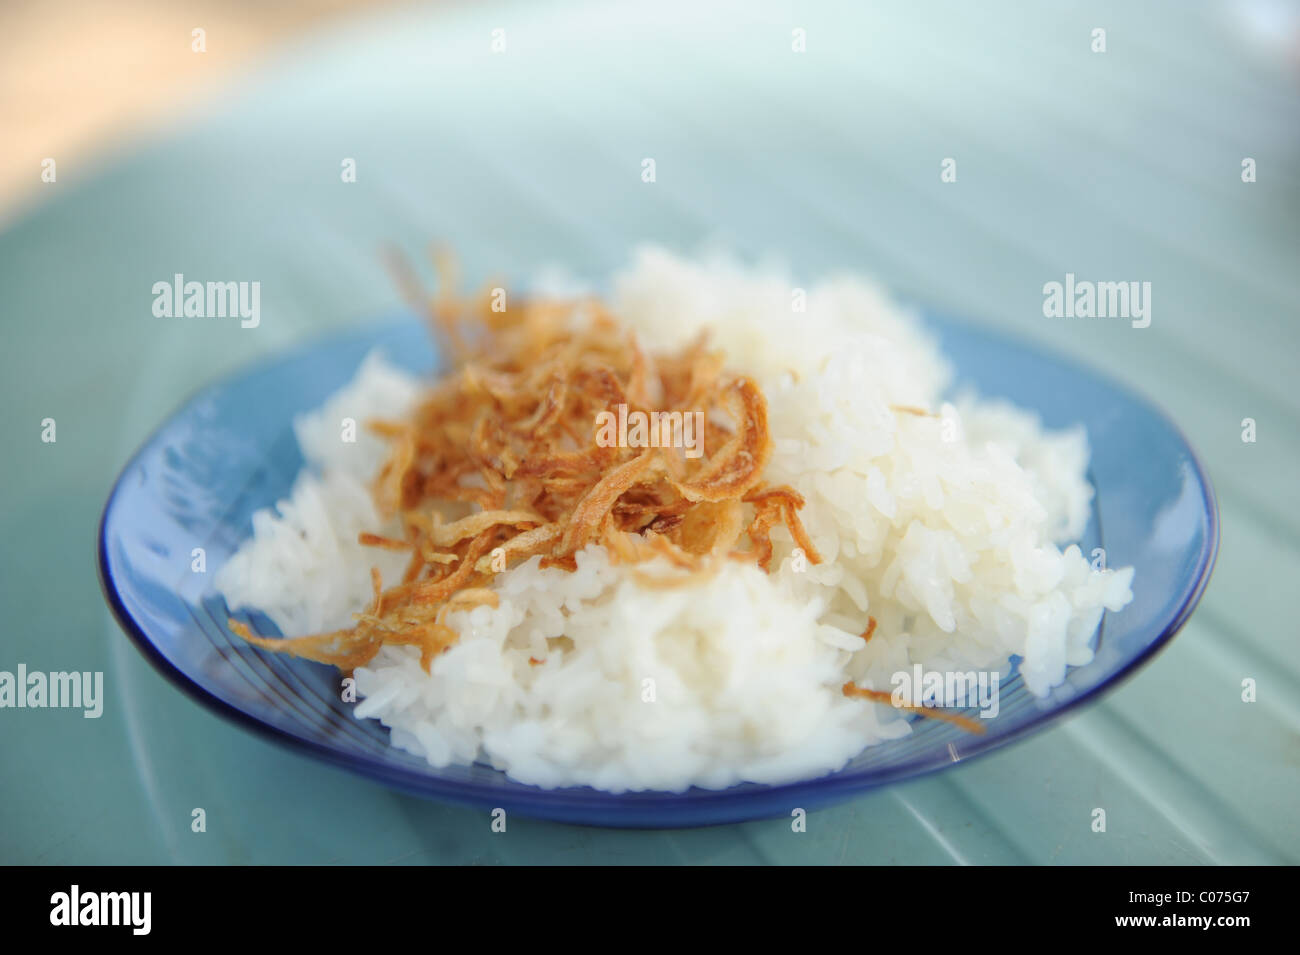 Thai Food Dishes Stock Photos & Thai Food Dishes Stock Images - Alamy